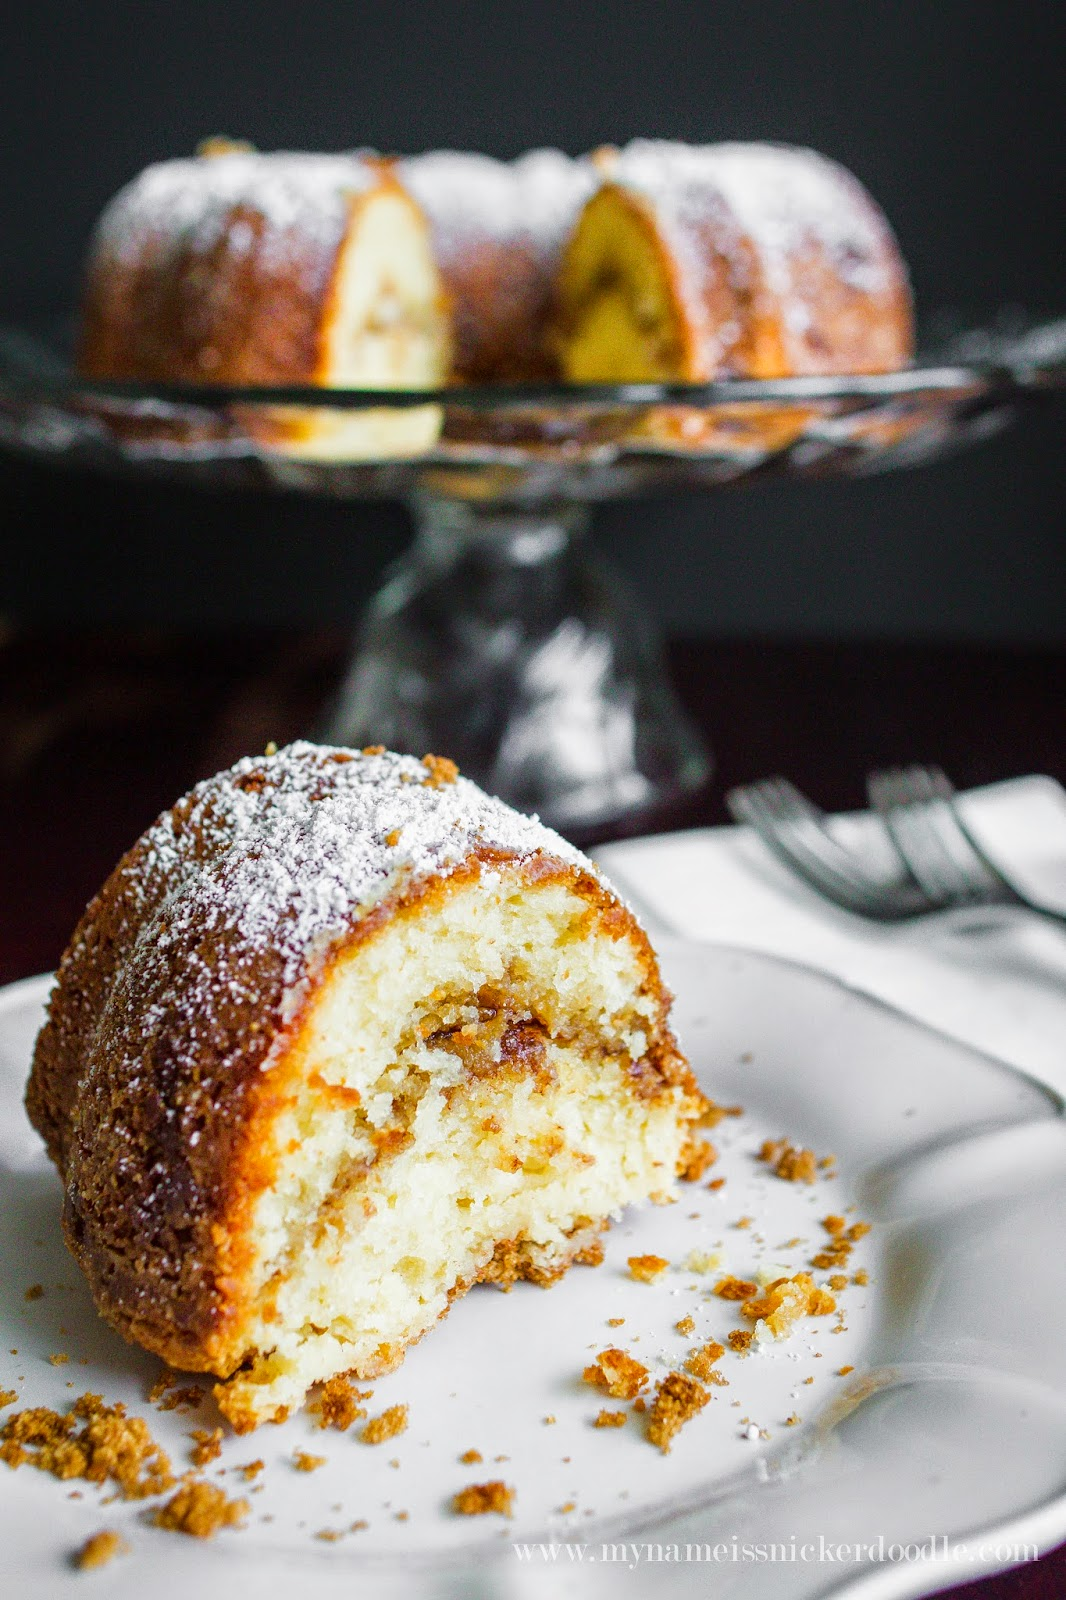 This Cinnamon Sour Cream Bunt Cake is the perfect recipe for dessert, brunch or breakfast!  |  mynameissnickerdoodle.com